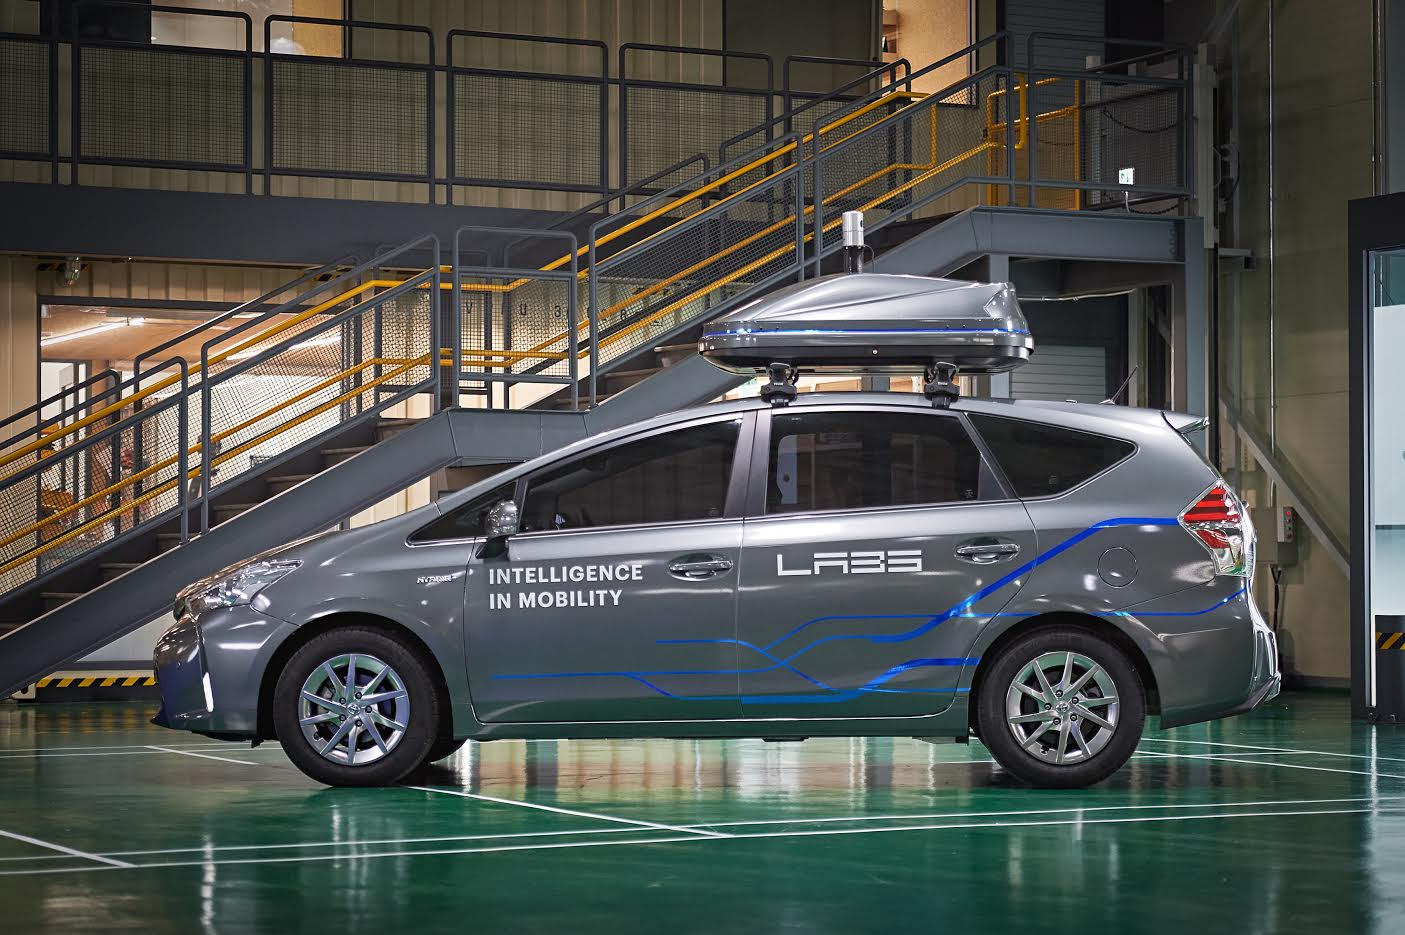 Naver Labs Autonomous Driving Vehicle